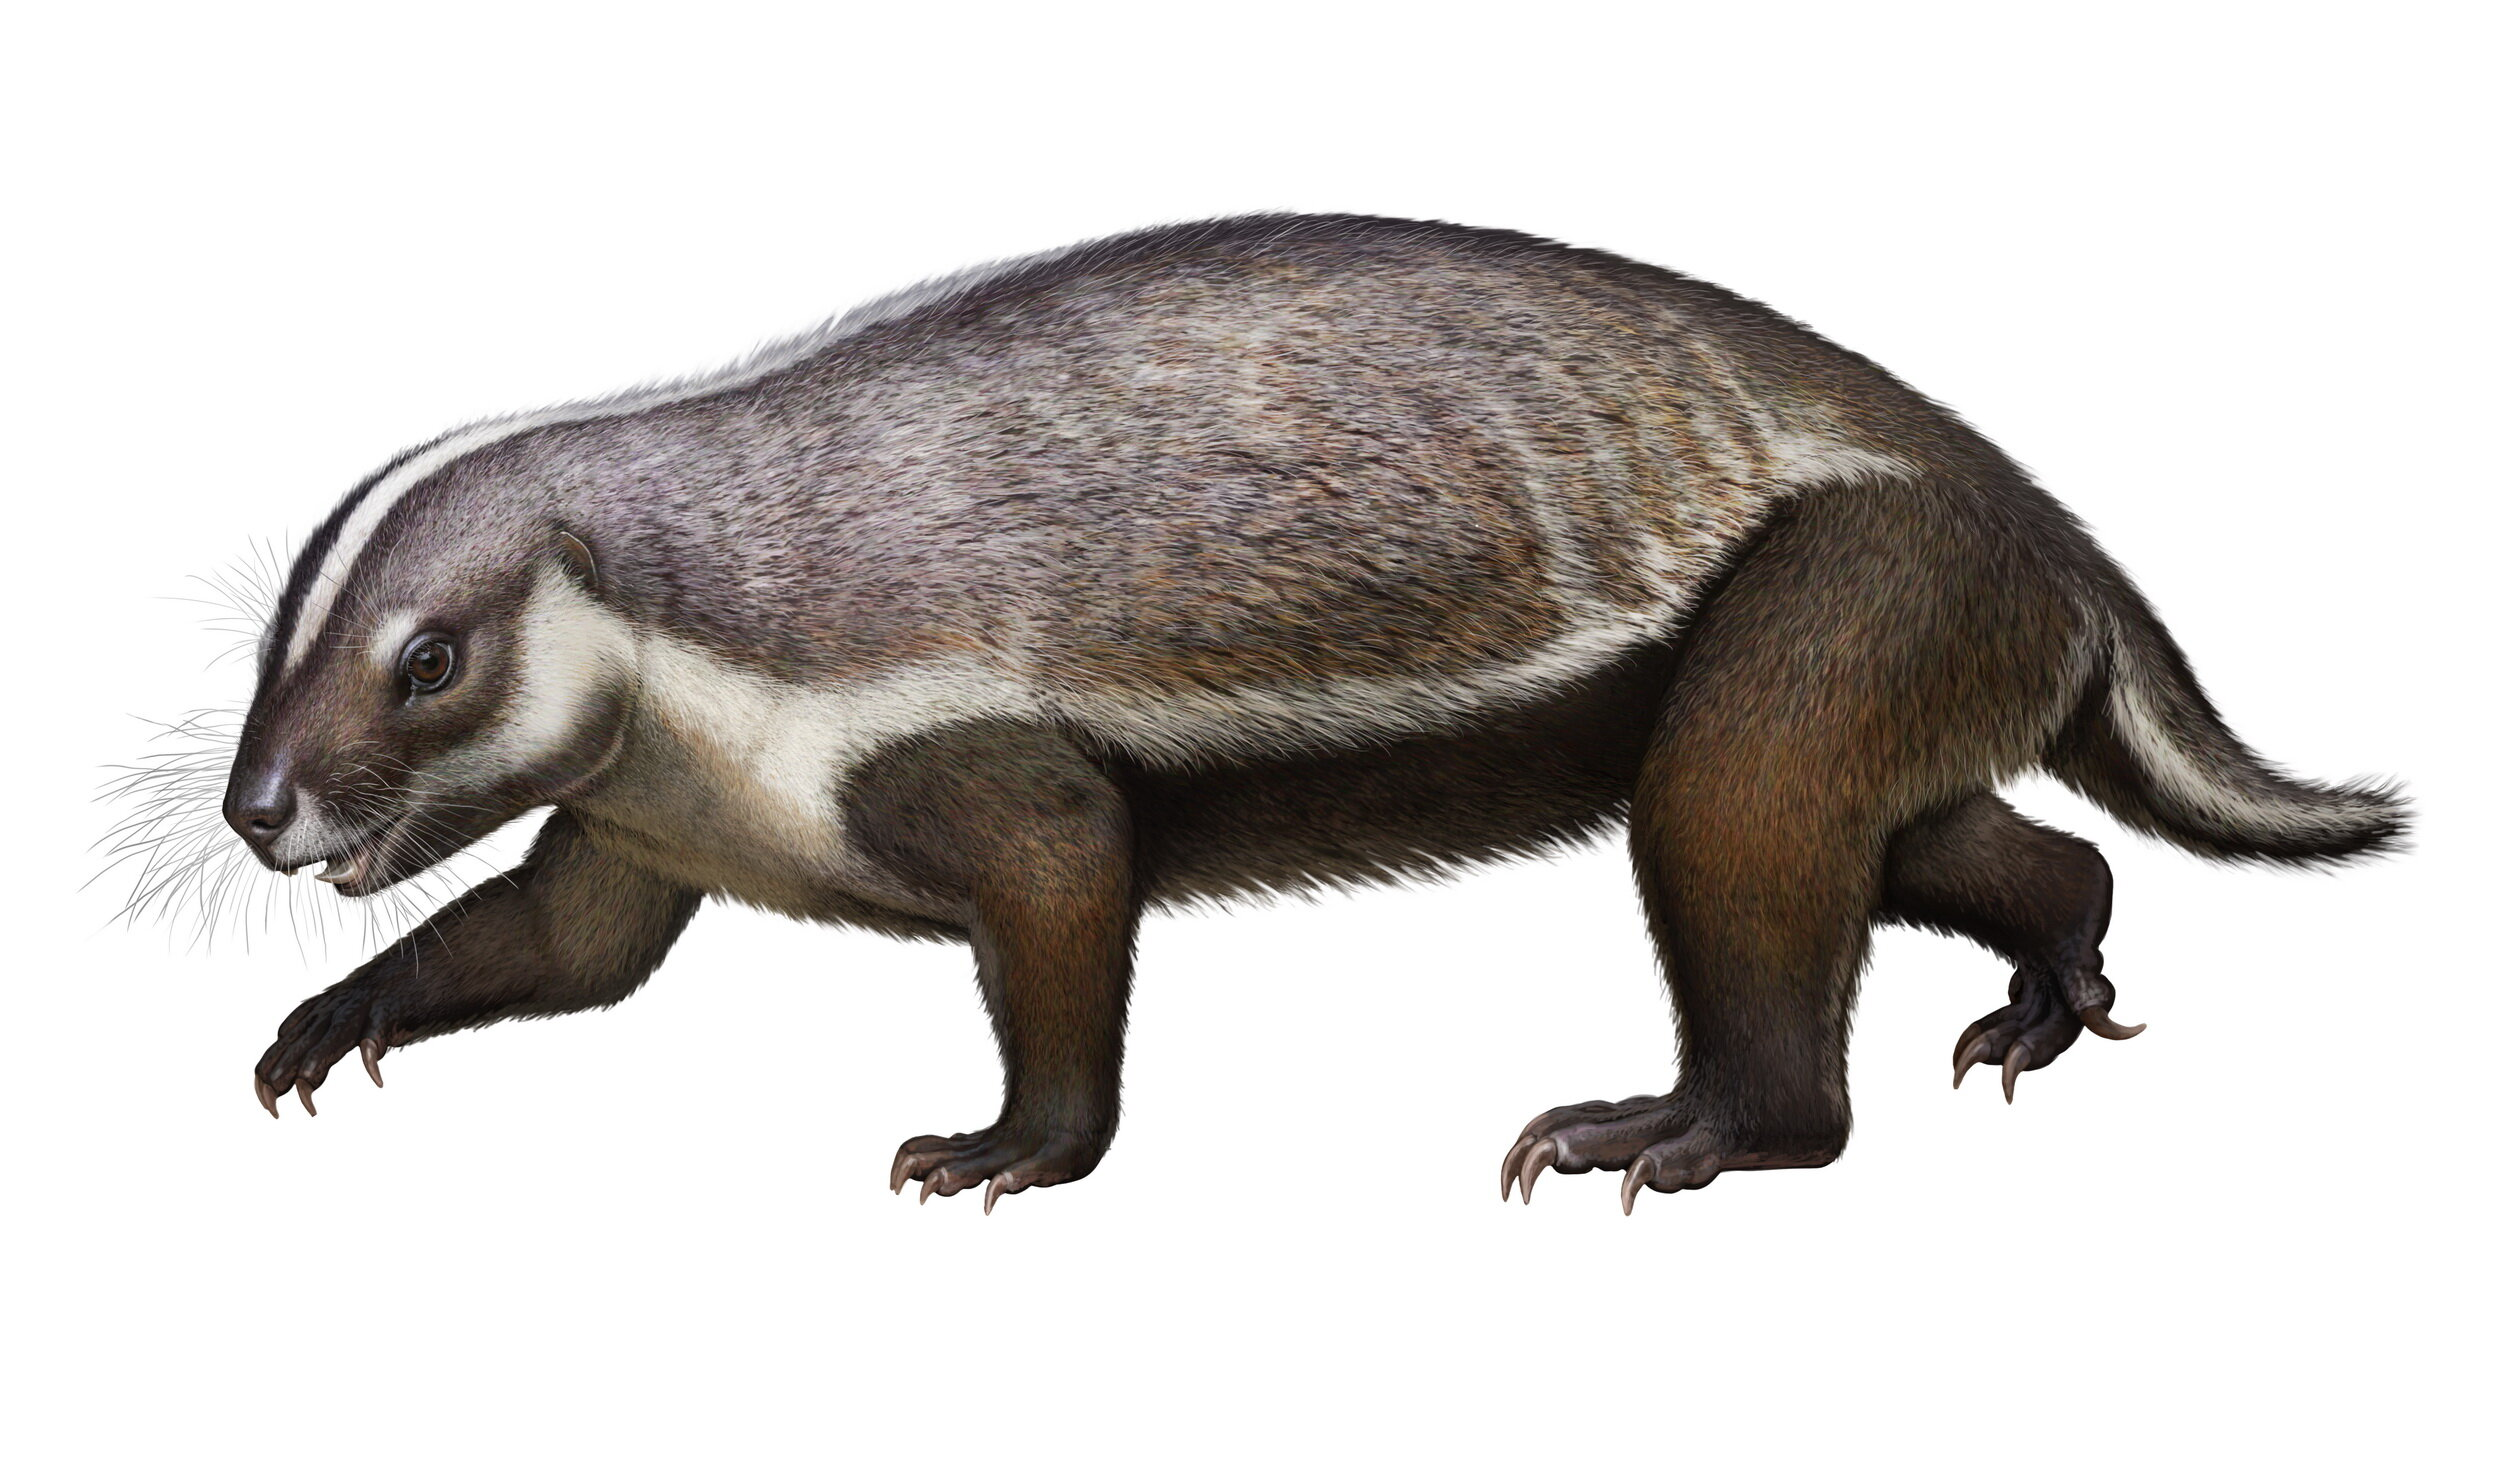 Marooned on Mesozoic Madagascar: Researchers discover 66-million-year-old 'crazy beast'